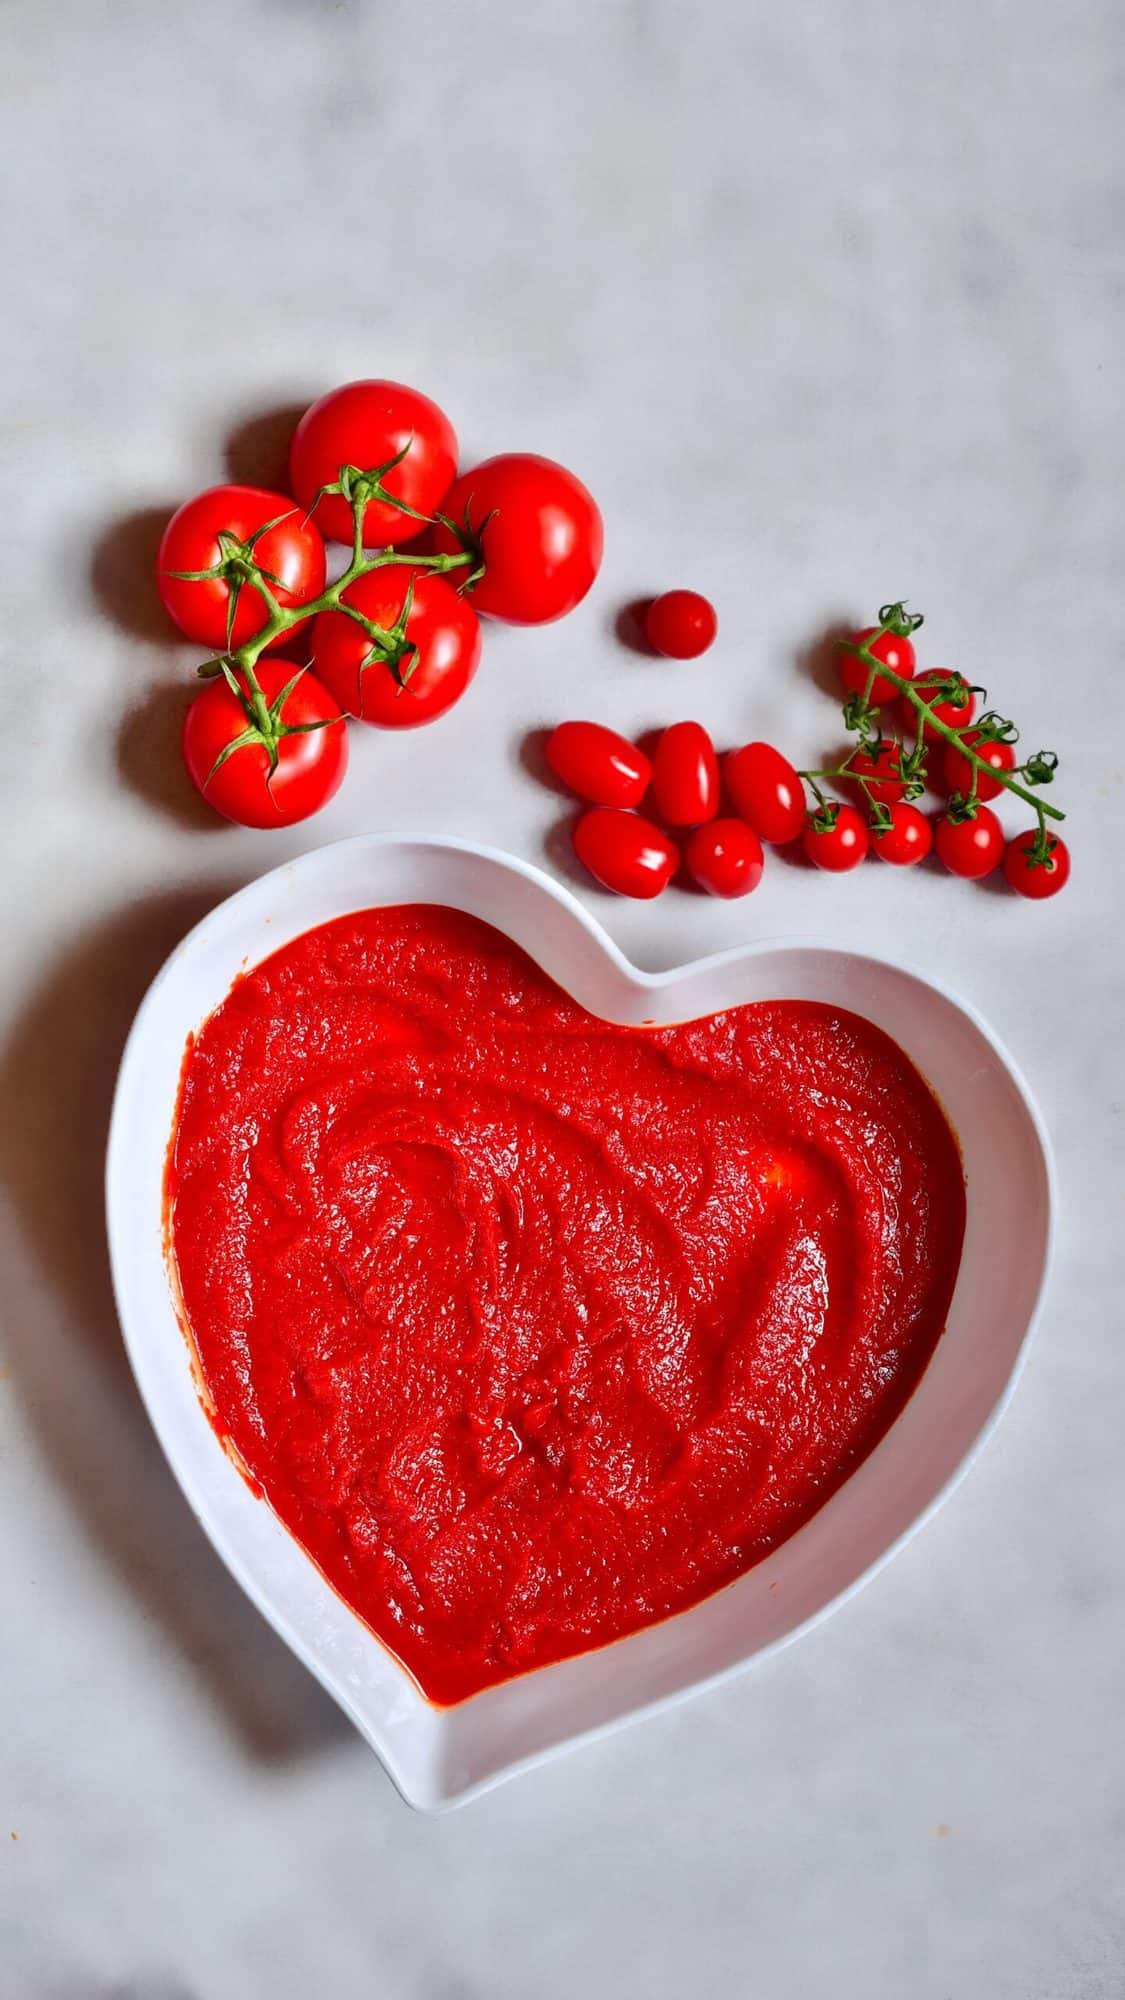 Tomato paste in a large bowl and tomatoes next to it